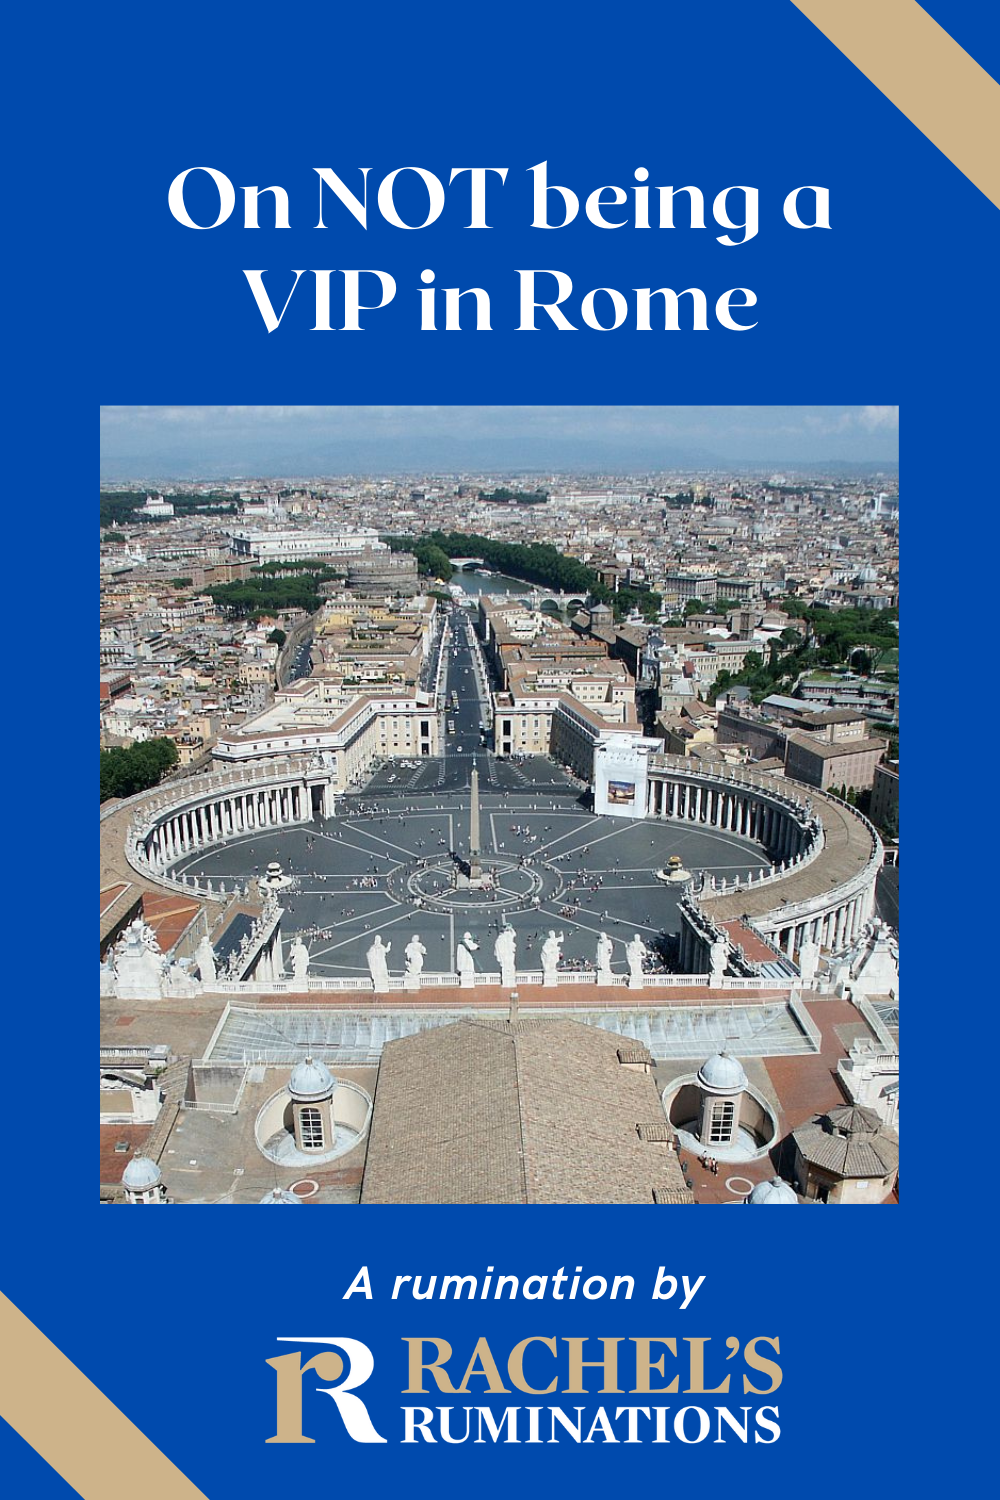 Ruminations on what happened to us when some VIPs in Rome wanted to visit historical sights and we common people just had to deal with it! Rome | Italy | tourism | VIPs via @rachelsruminations